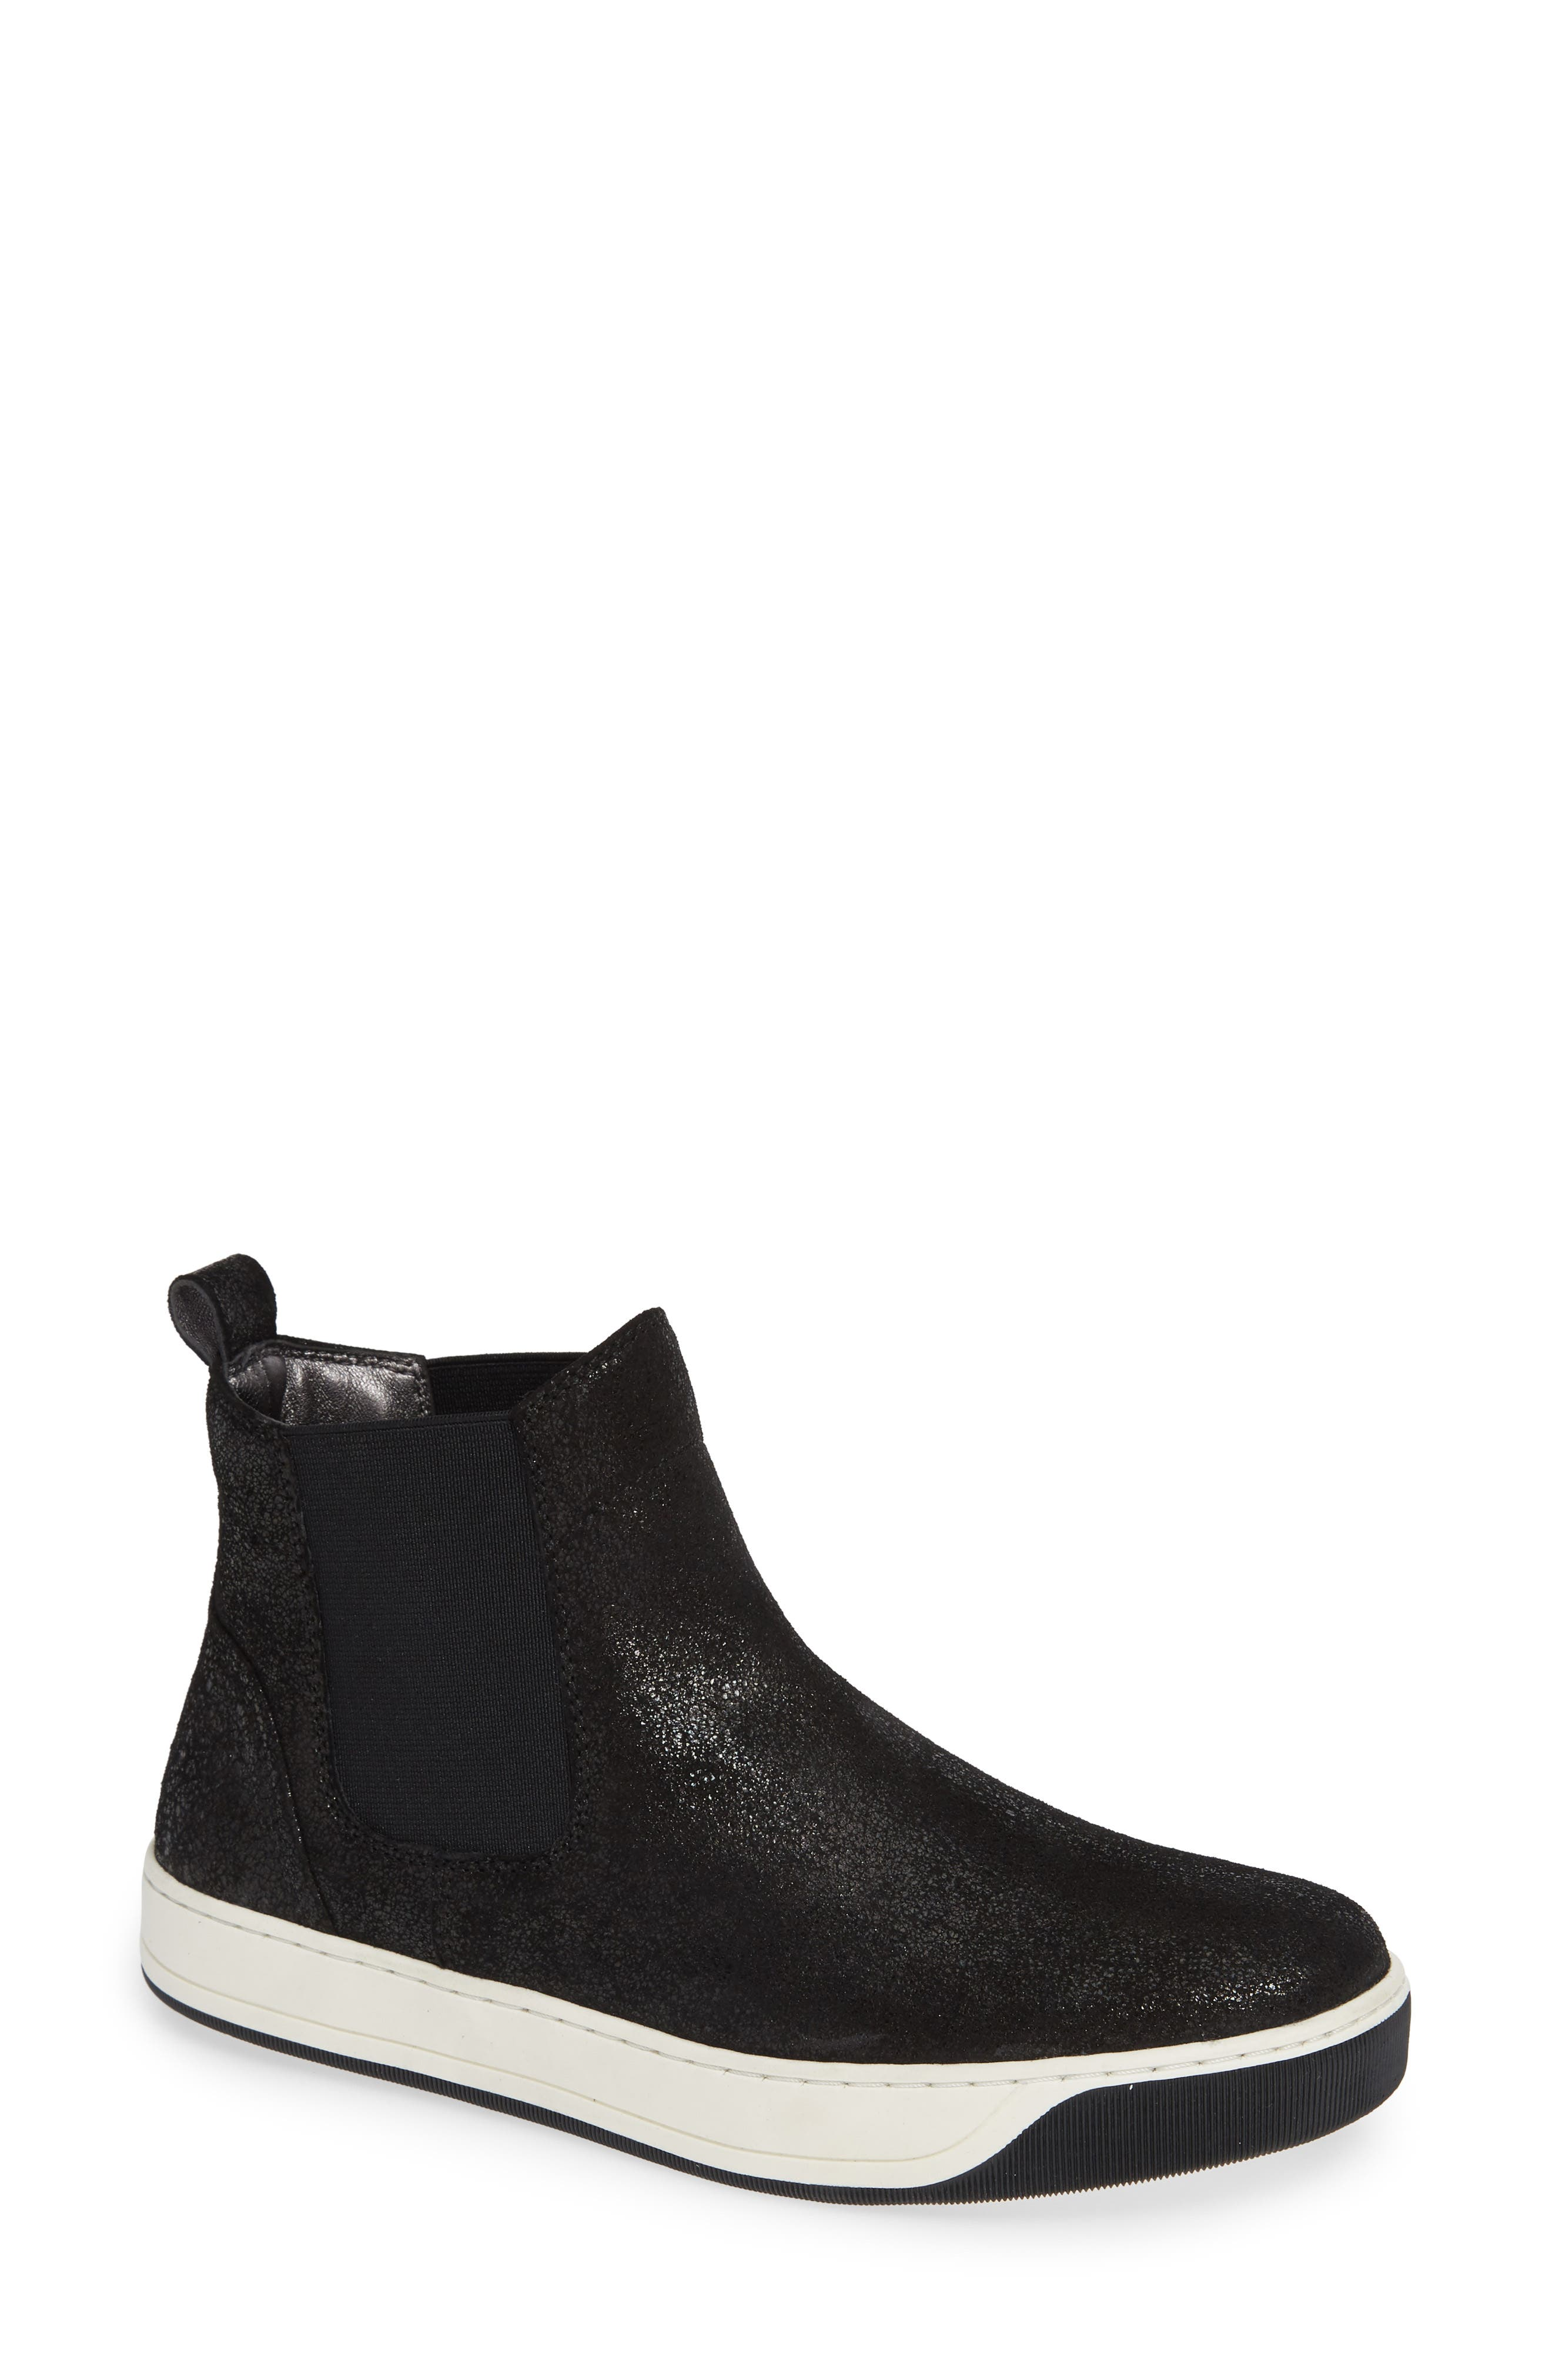 Erica High Top Sneaker,                             Main thumbnail 1, color,                             BLACK LEATHER